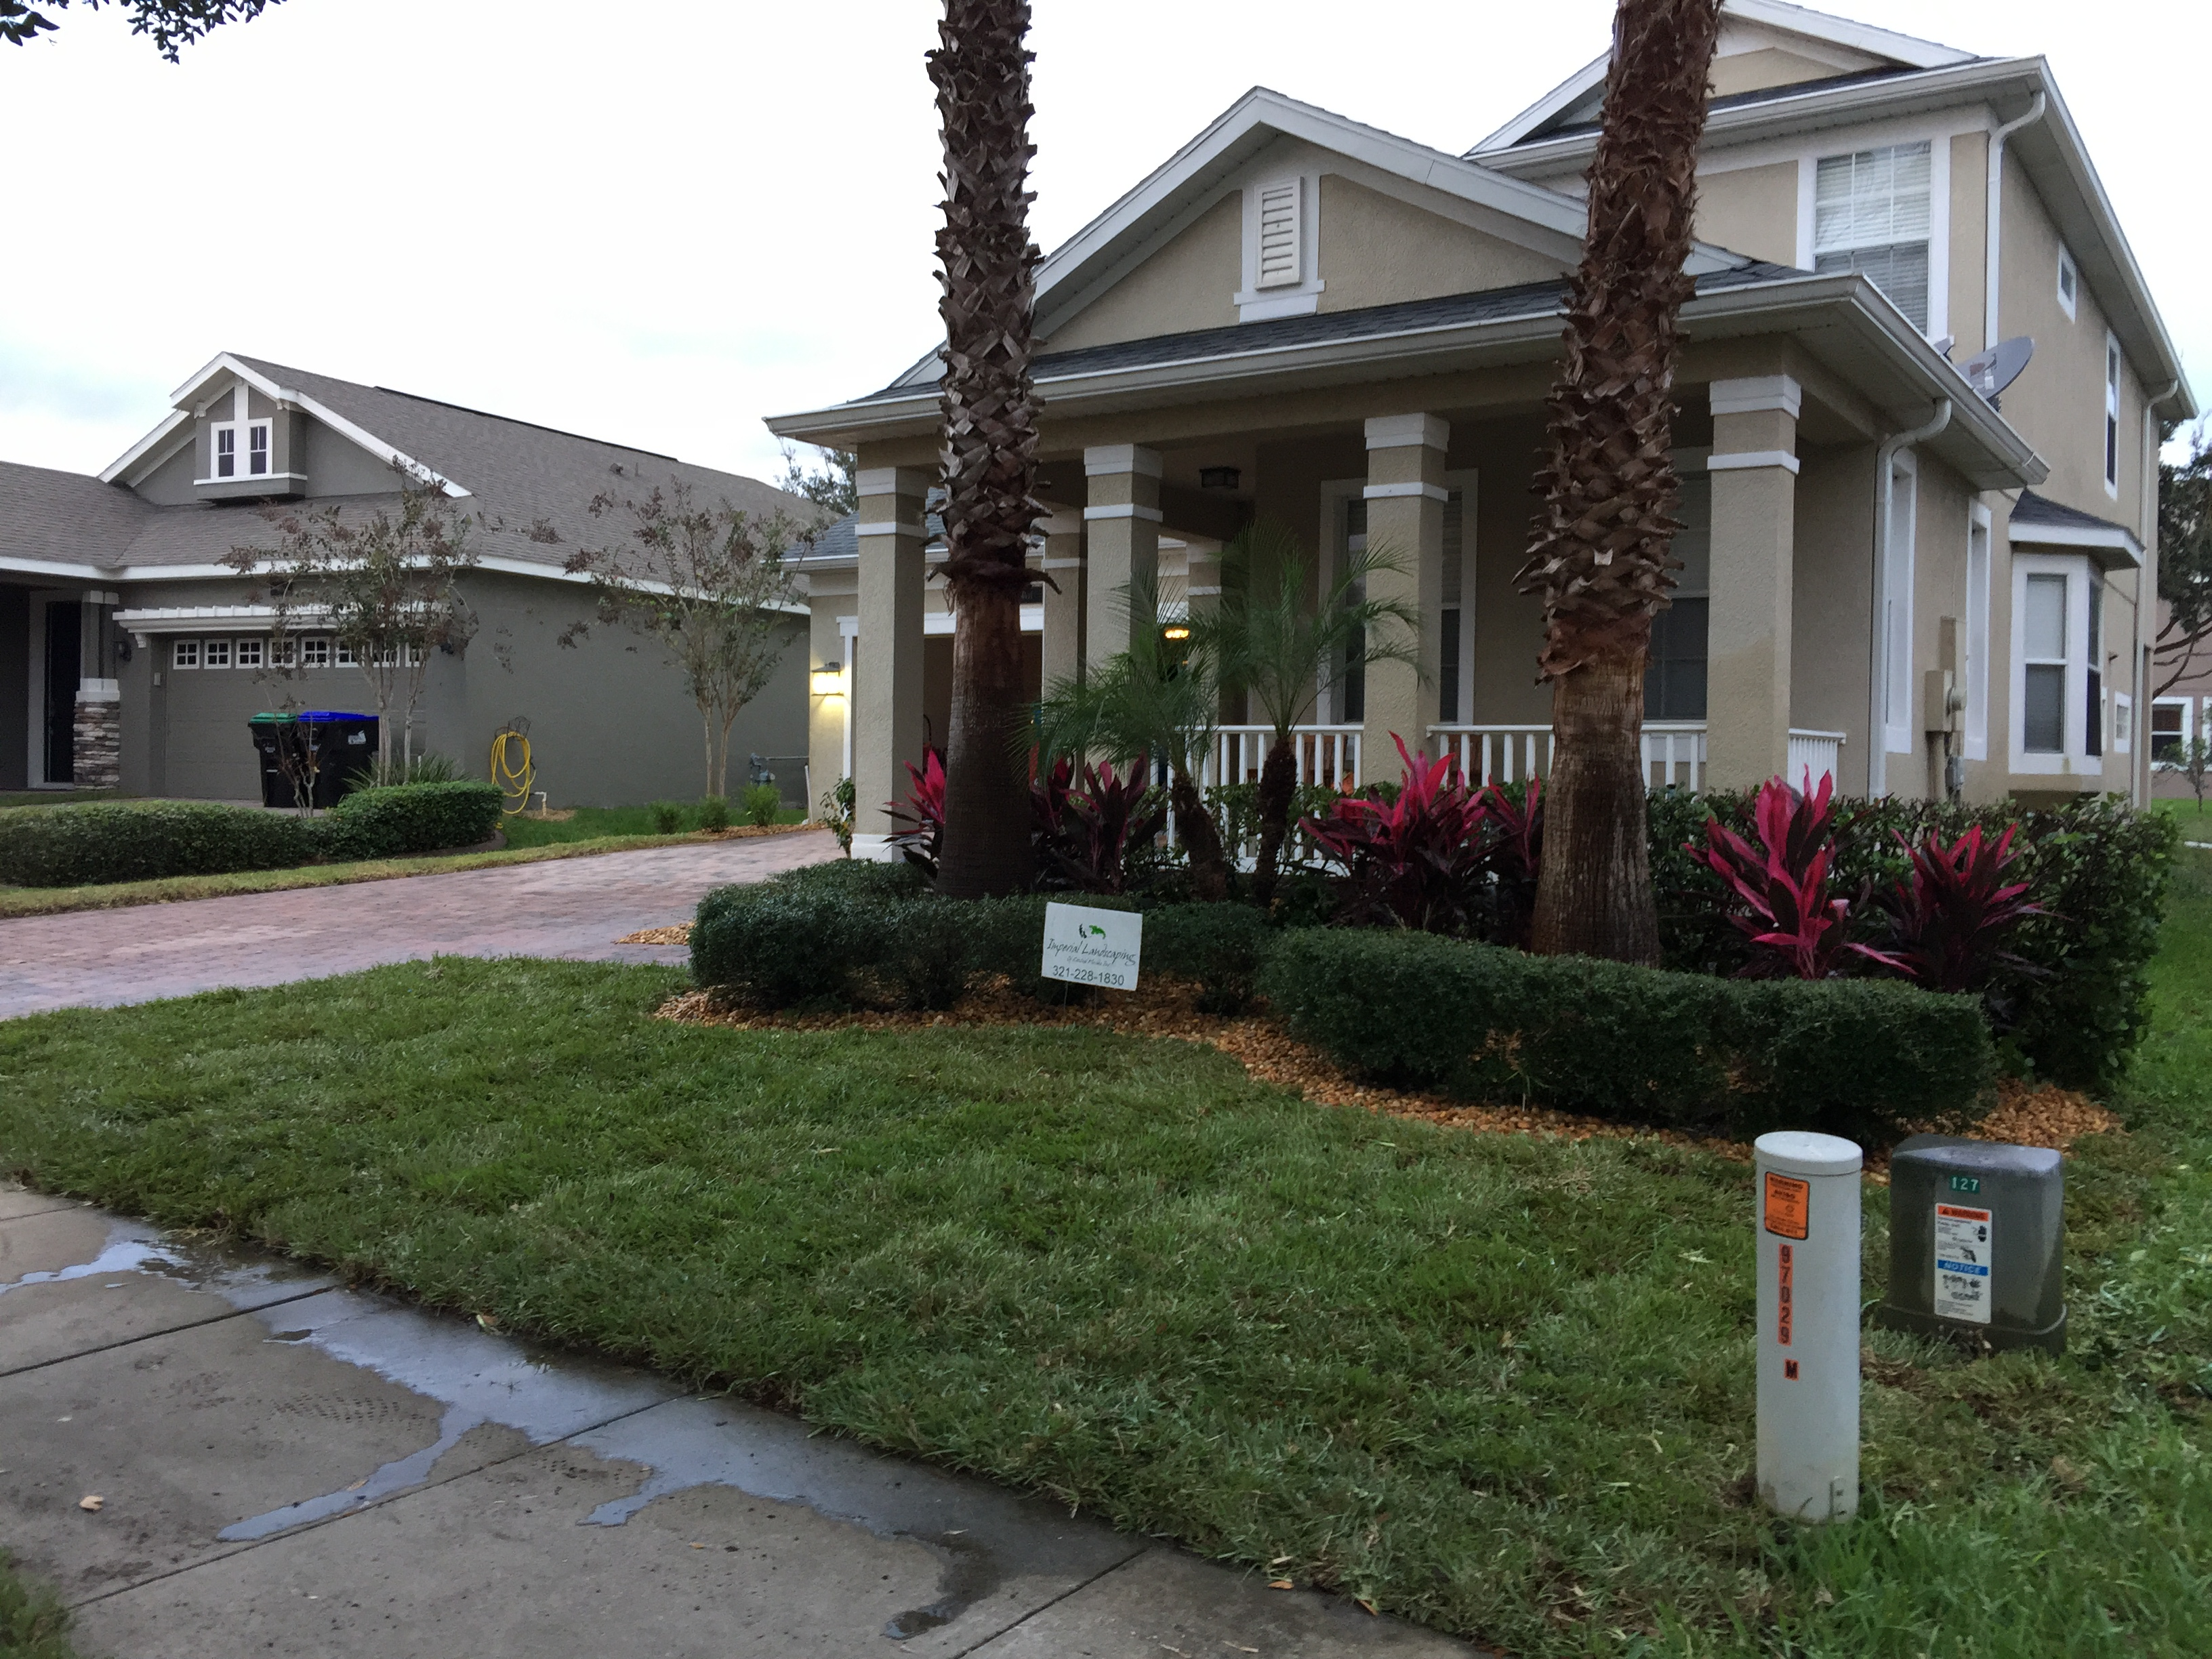 Yard mowing company in Ocoee, FL, 34761